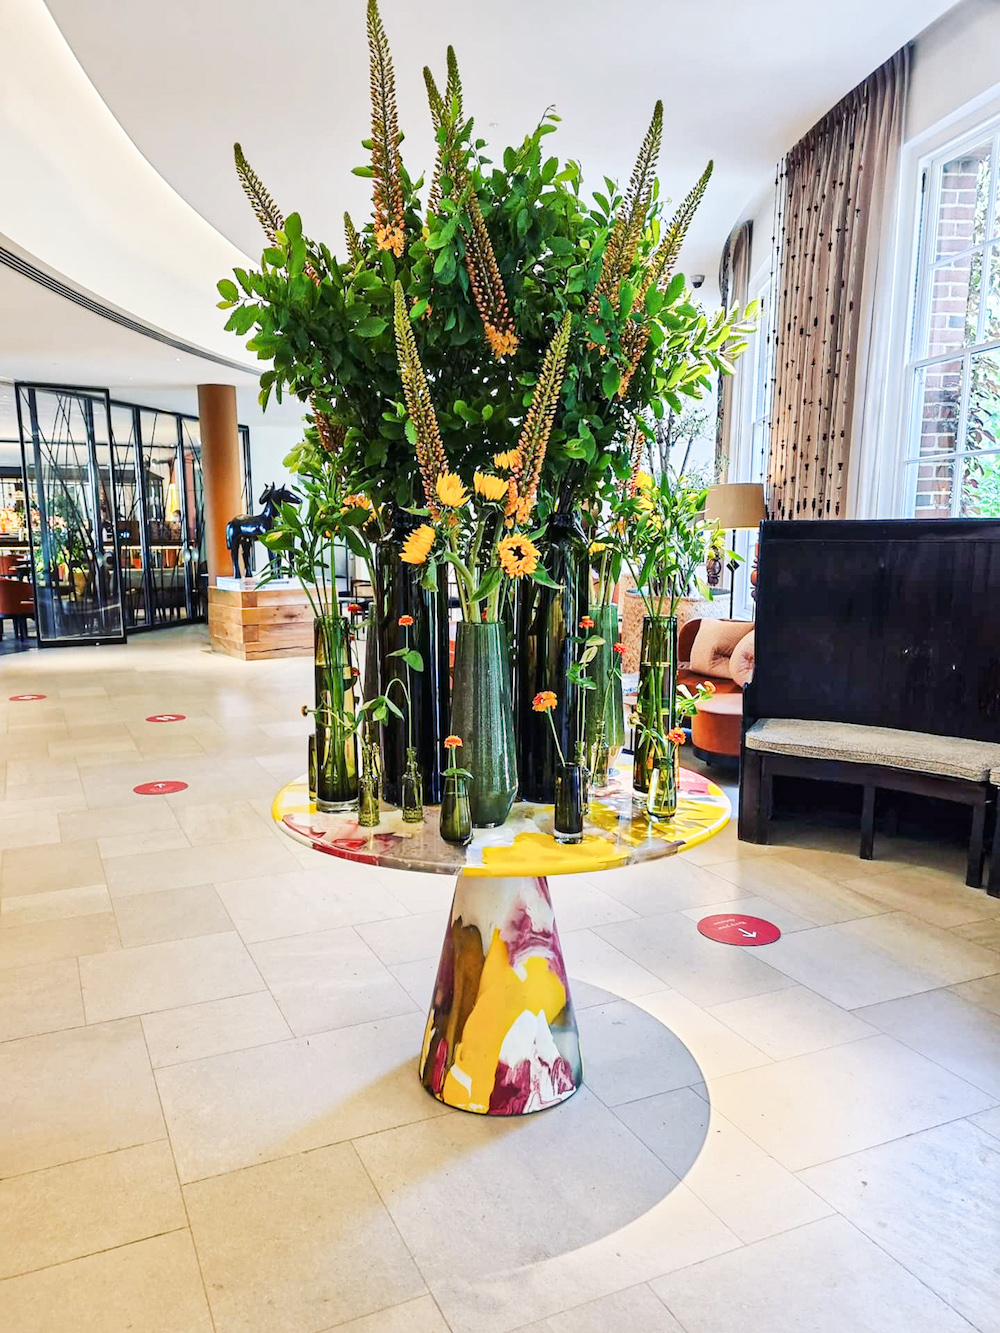 Image of table in Lobby